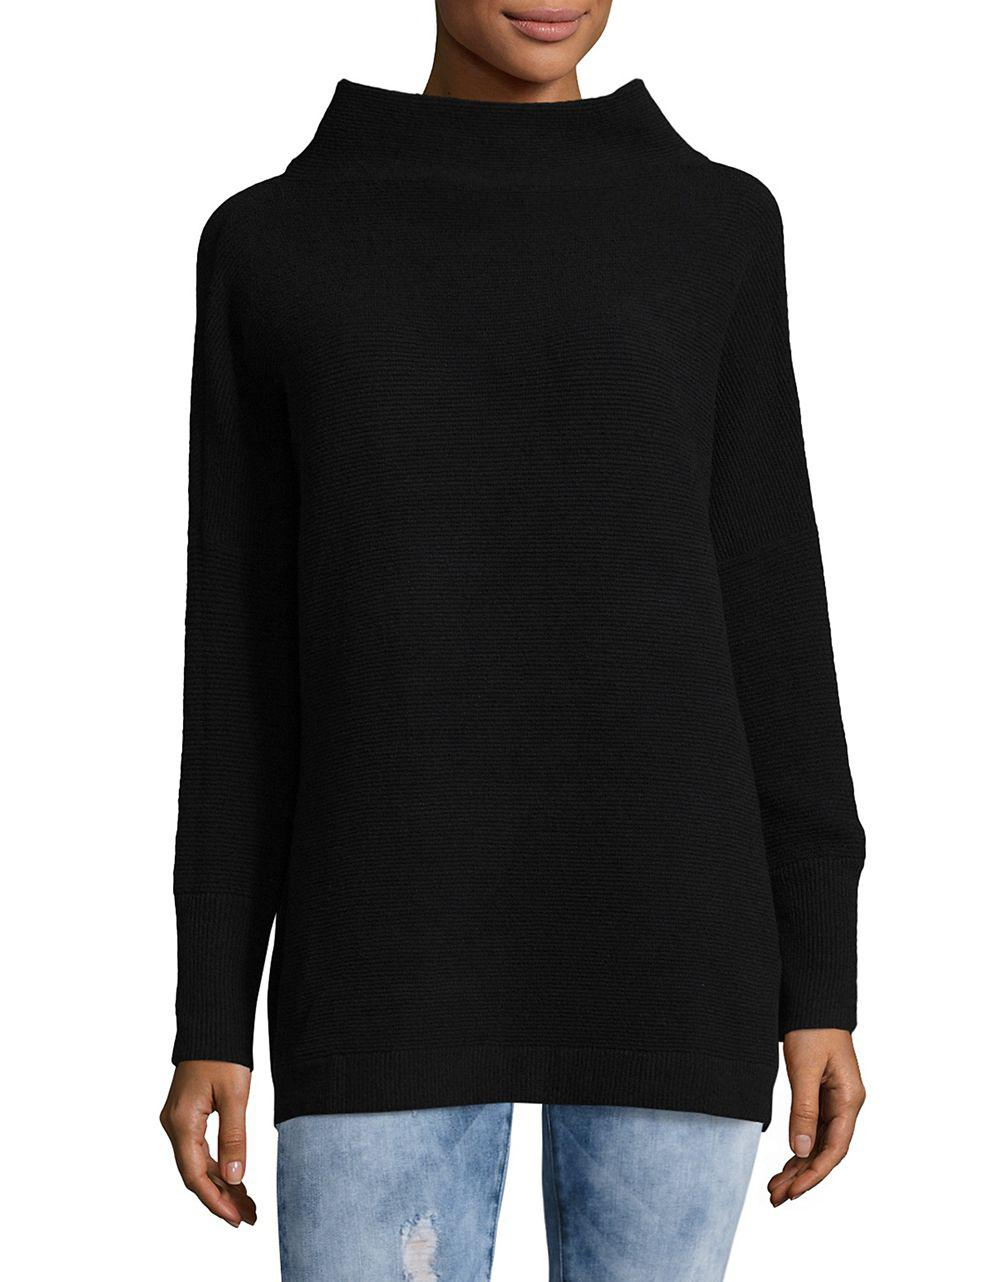 Free people Ottoman Slouchy Tunic Sweater in Black | Lyst